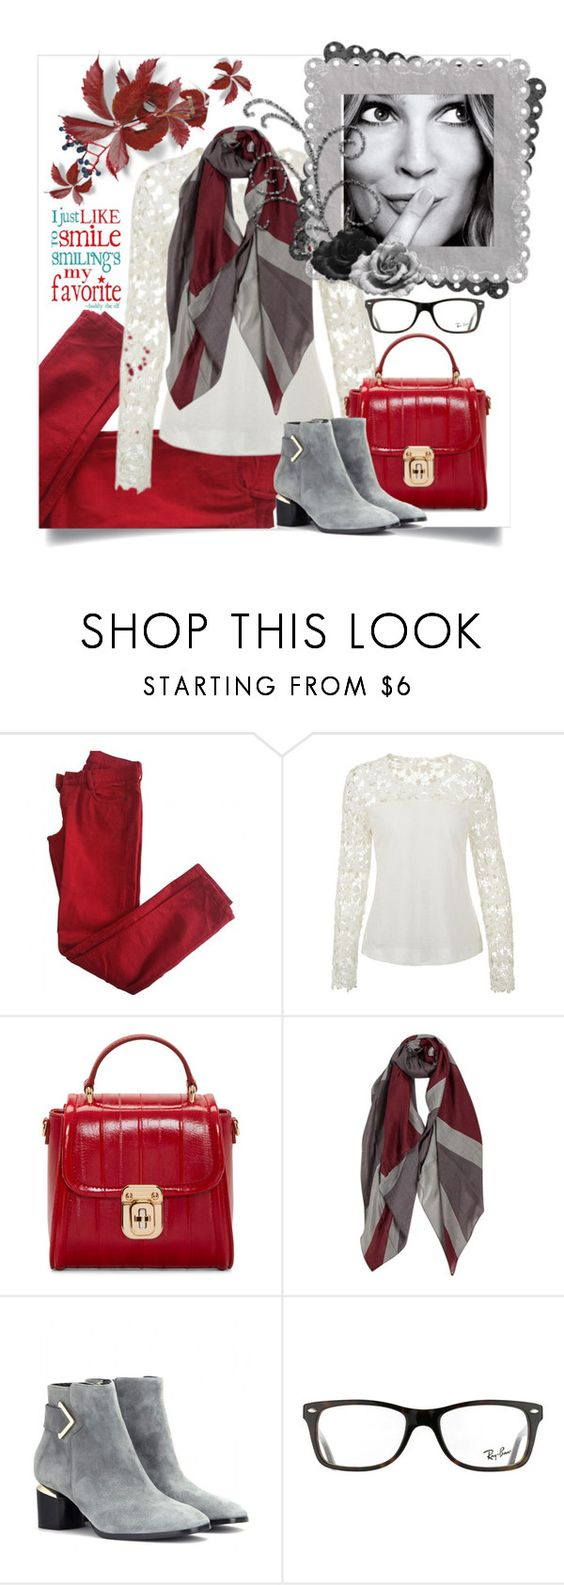 """""""I just like to smile"""" by juliehooper ❤ liked on Polyvore featuring Comptoir Des Cotonniers, Dolce&Gabbana, Nicholas Kirkwood and Ray-Ban"""